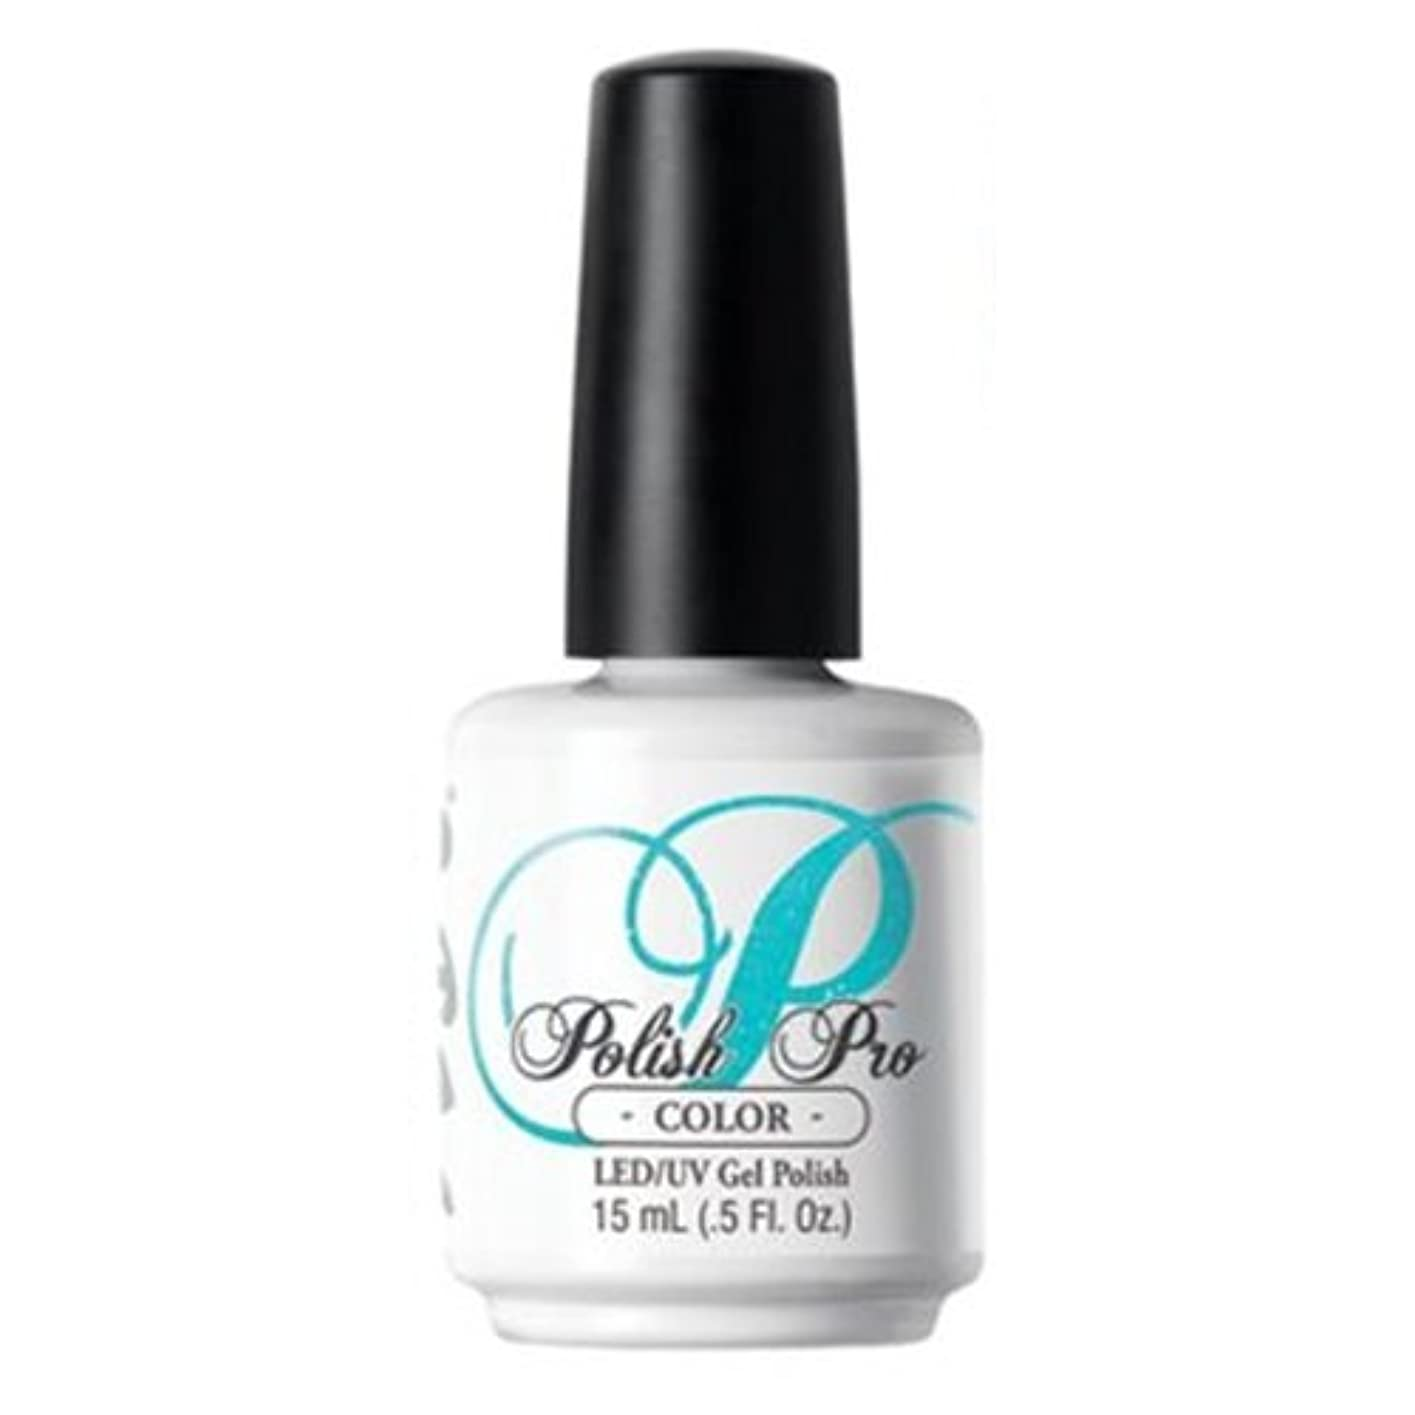 ひばりトランクキュービックNSI Polish Pro Gel Polish - Ocean Princess - 0.5oz / 15ml